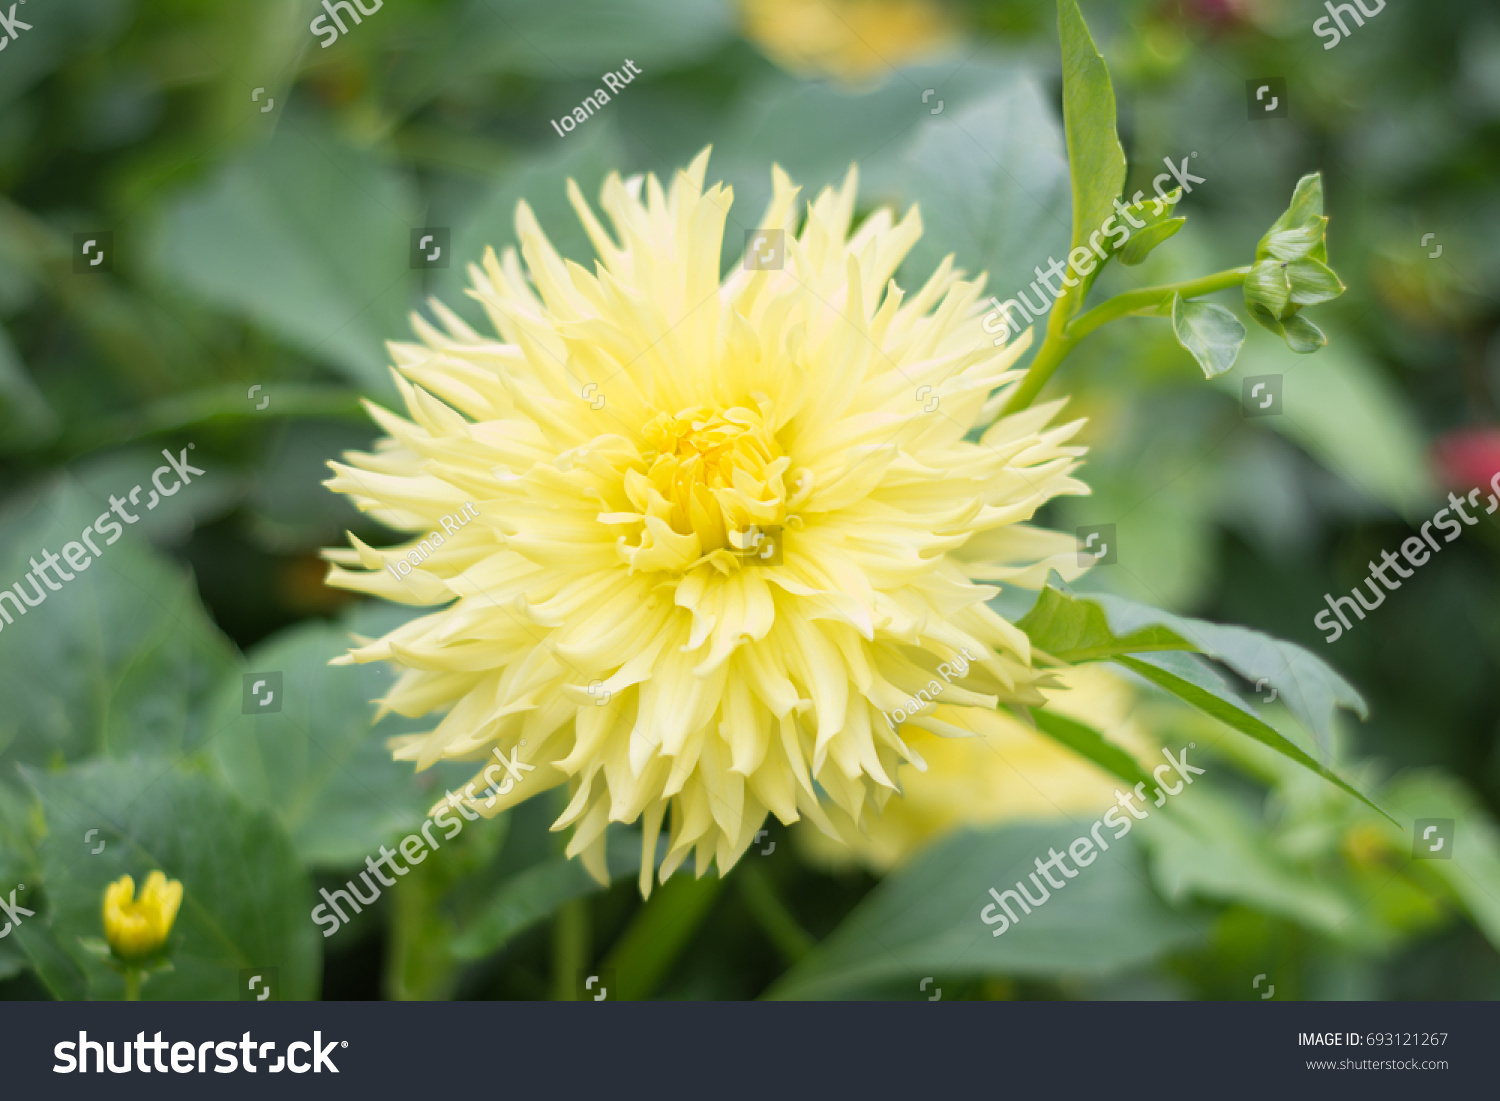 Colorful yellow dahlia flower amazing gentle stock photo edit now colorful yellow dahlia flower amazing and gentle dahlia flower isolated perfect image for izmirmasajfo